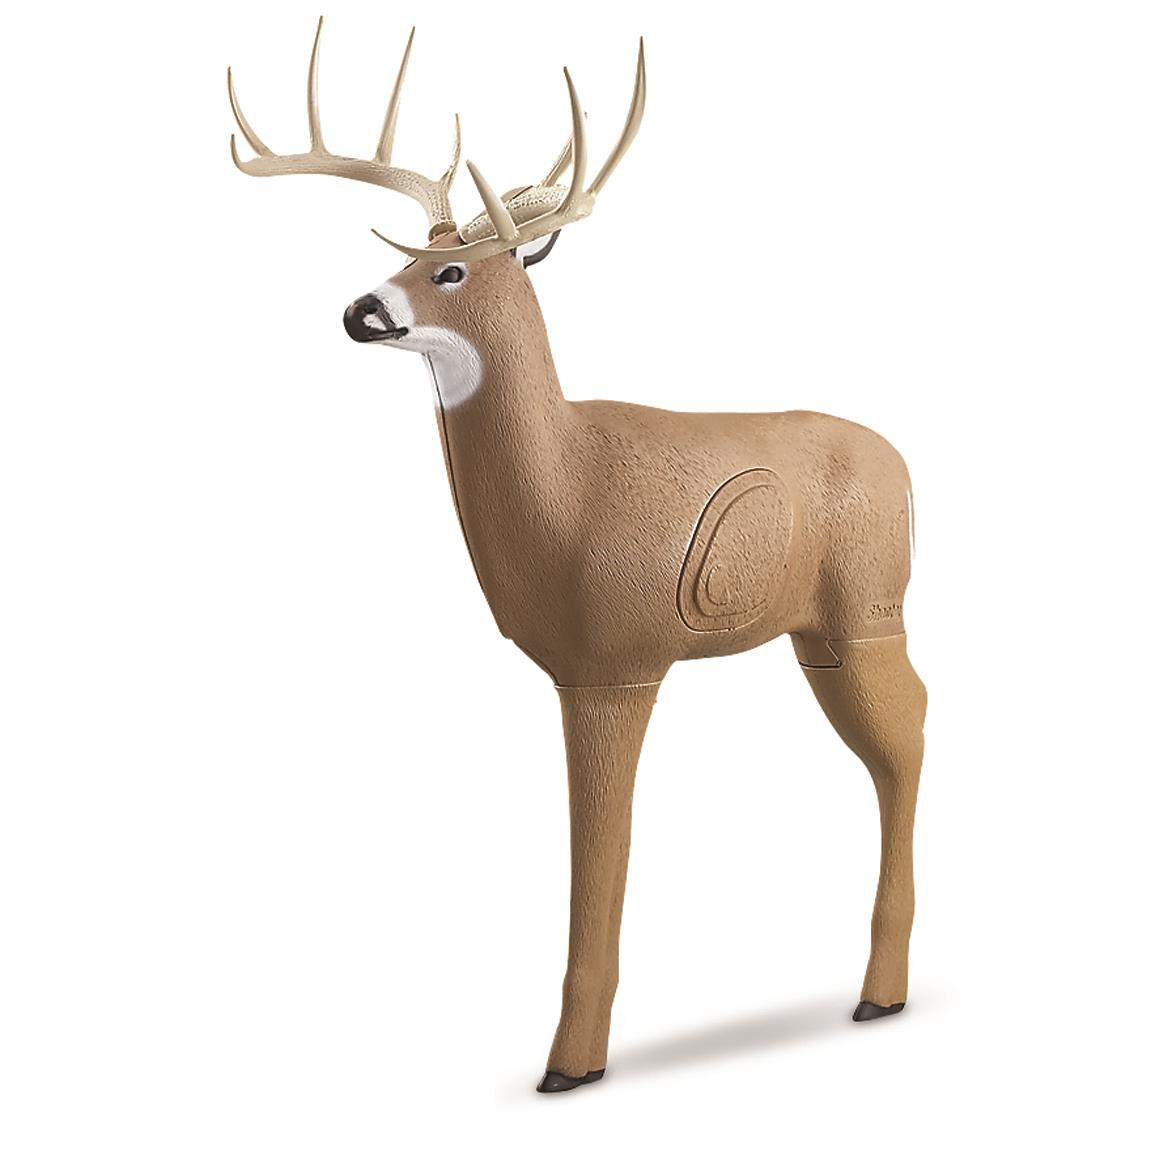 Shooter Buck™ 3D Archery Target, Slight Cosmetic Blemish